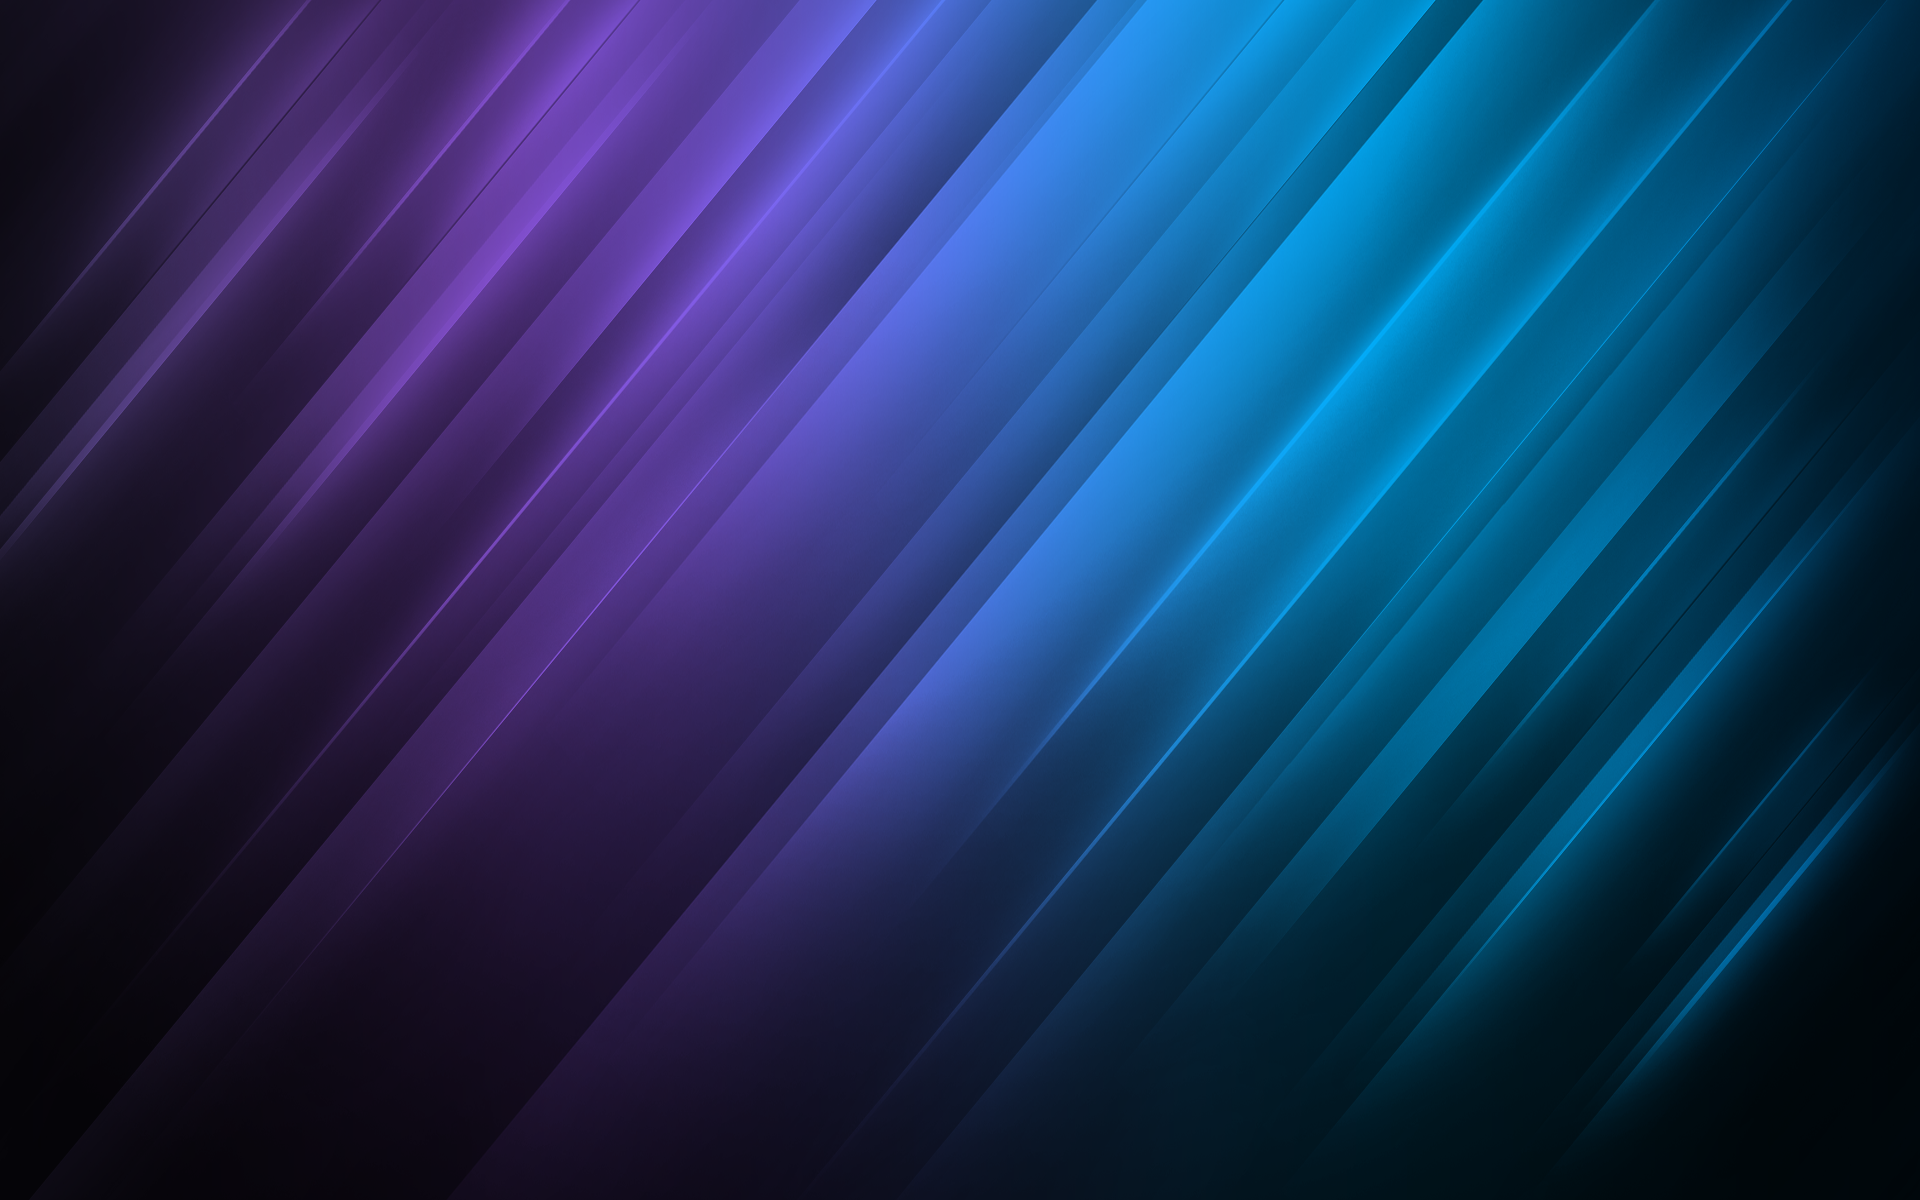 Purple And Turquoise Wallpaper